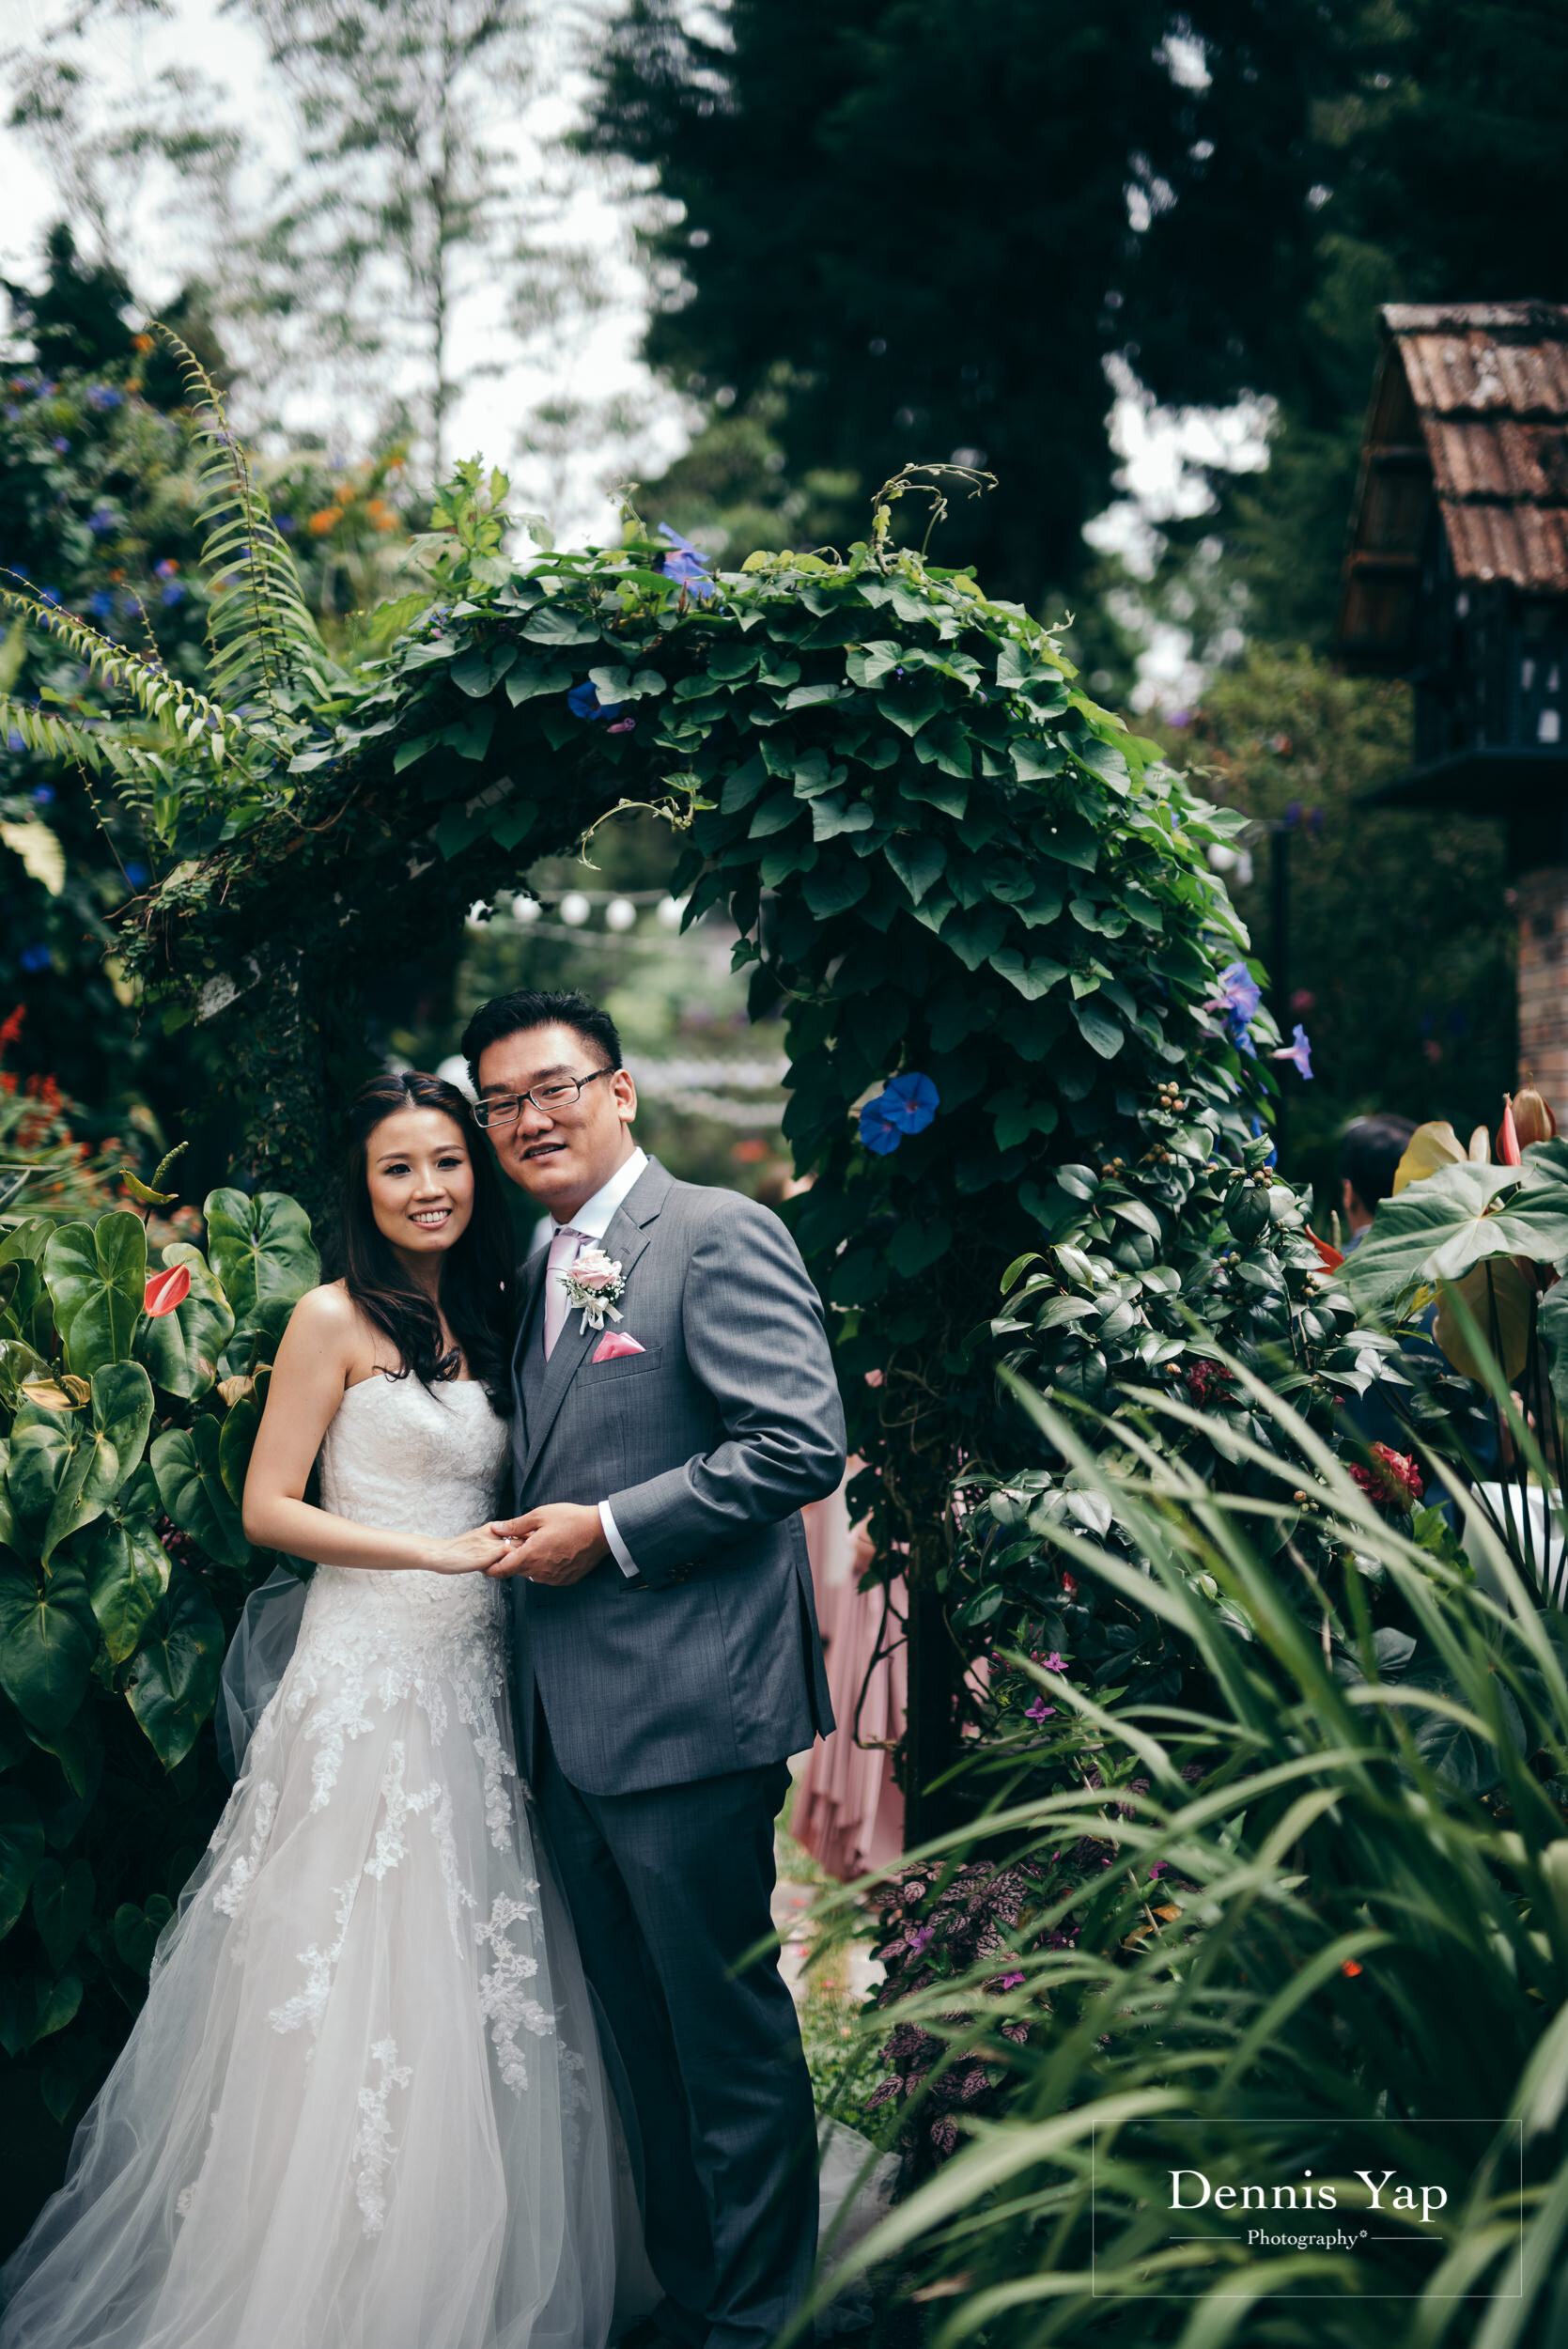 alex siowli wedding reception cameron highlands smoke house dennis yap photography malaysia traditional church wedding-129.jpg